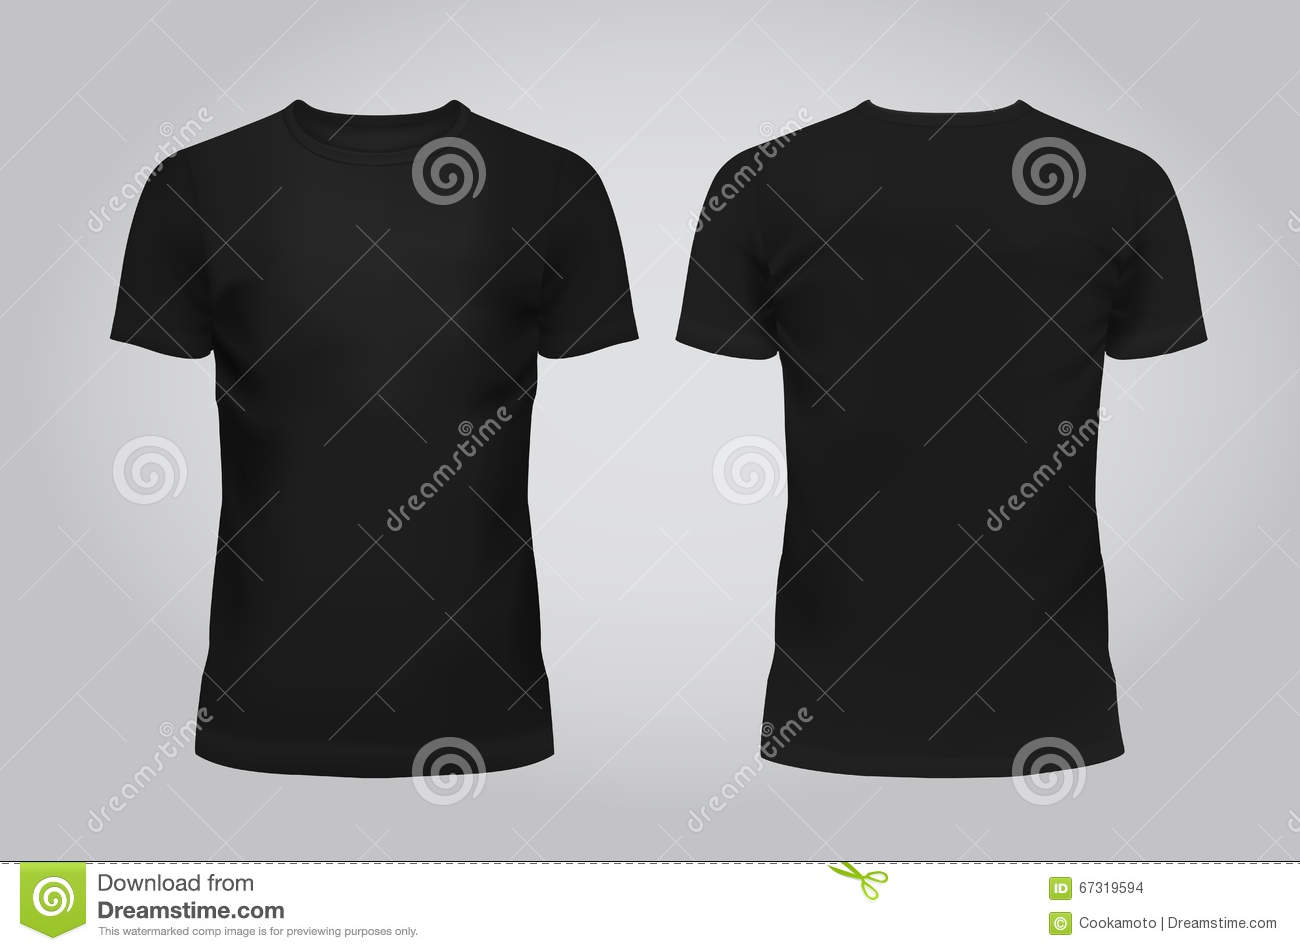 Vector illustration of design template black men T-shirt, front and back on a light background. Contains